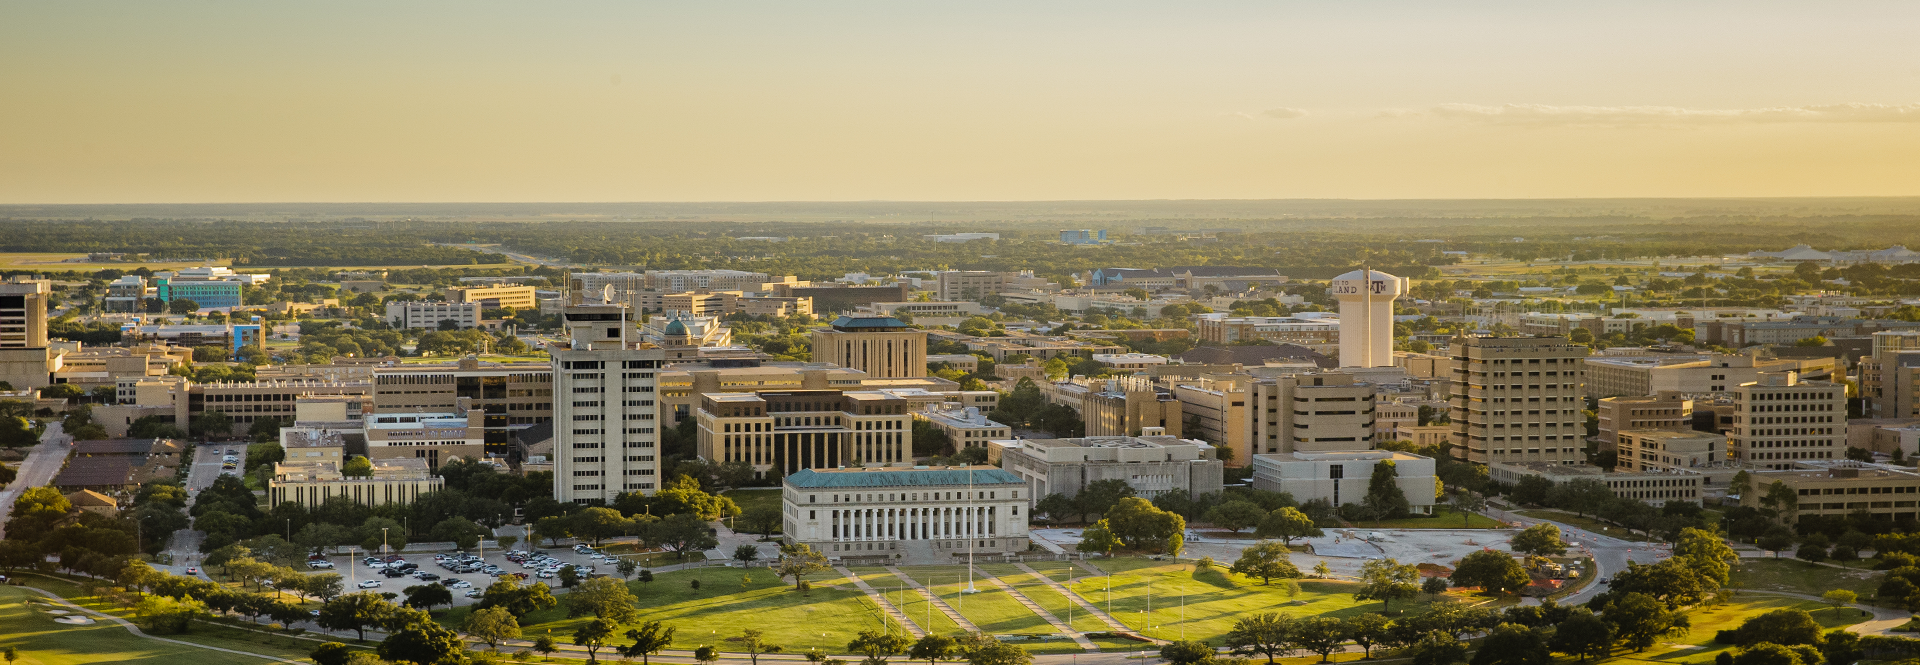 Donations to the Texas A&M University Disaster Relief Fund will support Texas A&M students and employees in small-but-essential, one-time immediate needs in the wake of COVID-19.